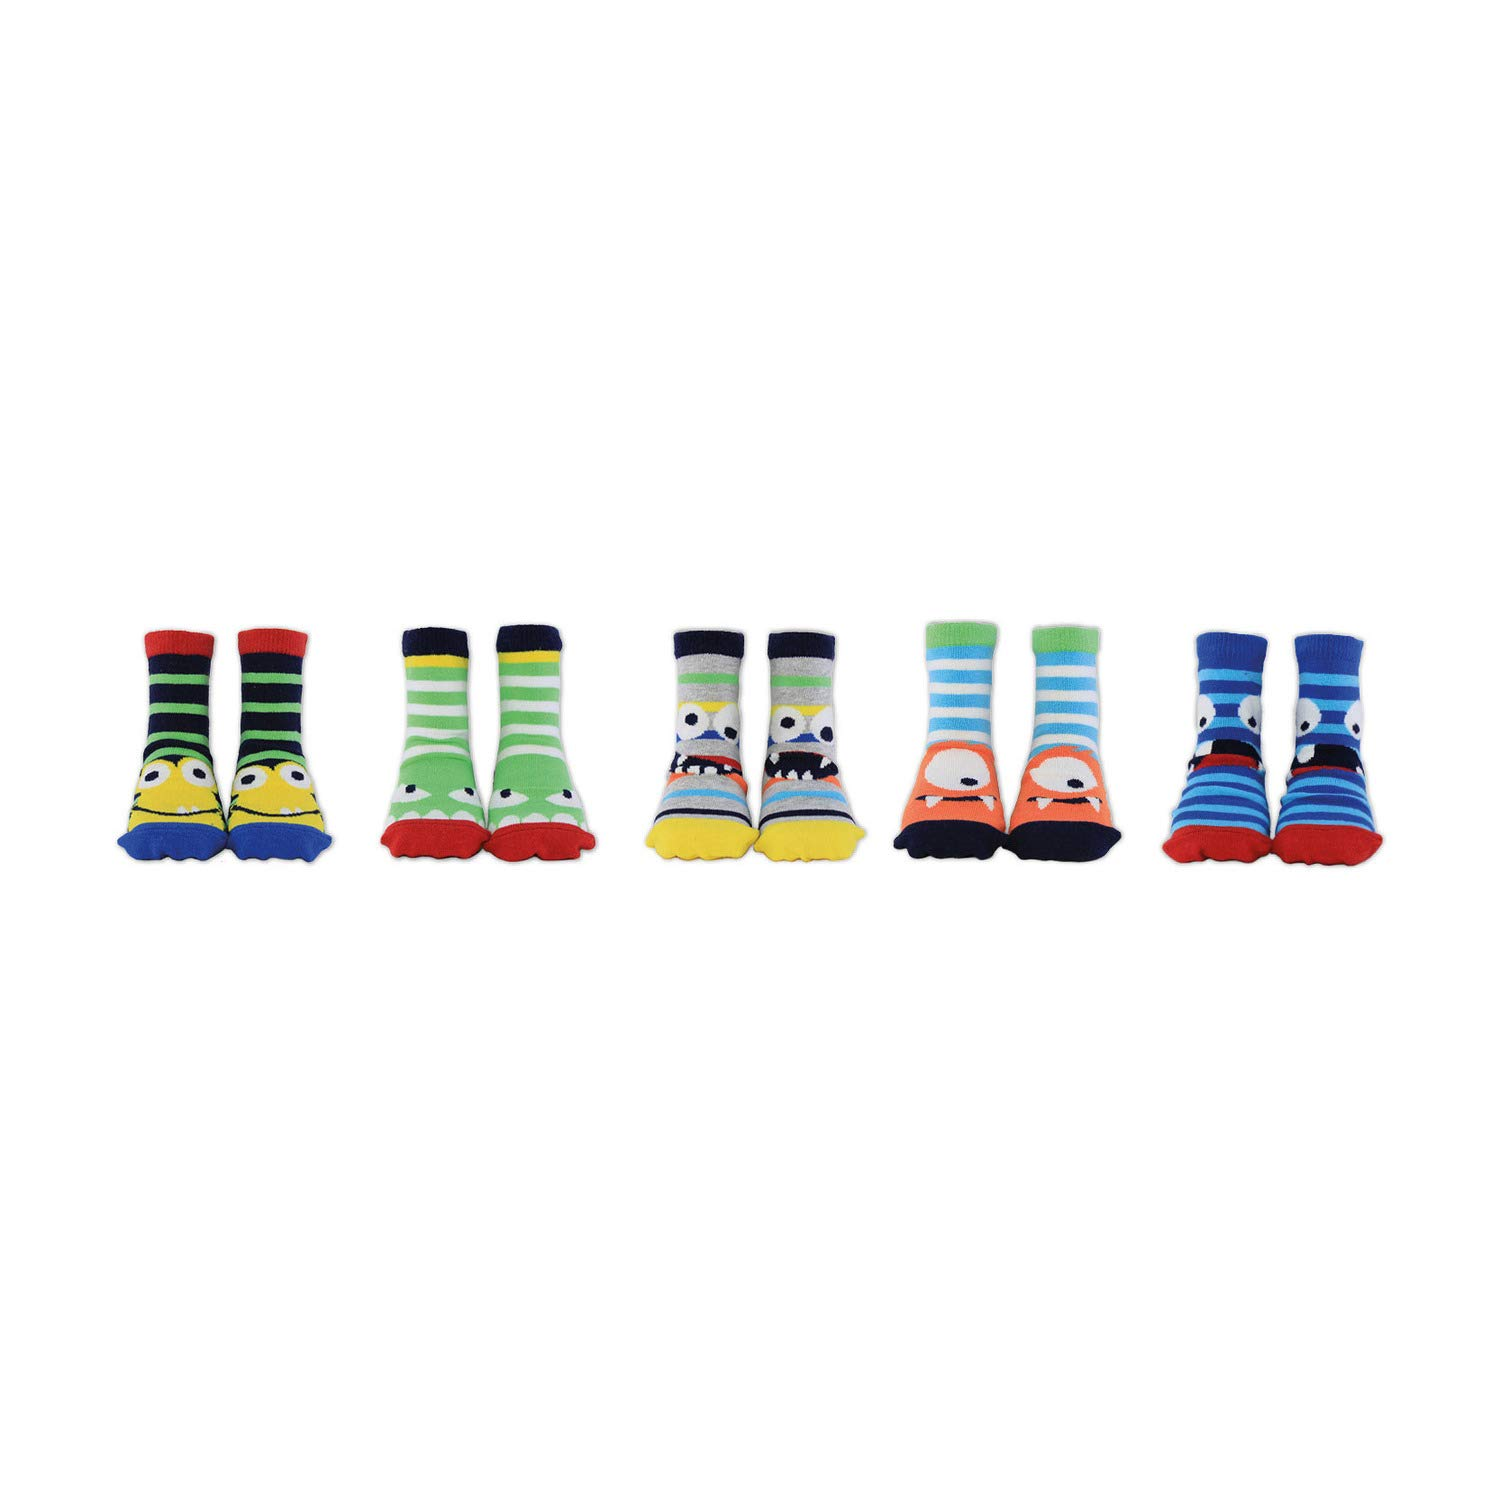 Cucamelon Little Nippers 5 Pairs of Socks 2-4 Years Toddler Giftboxed